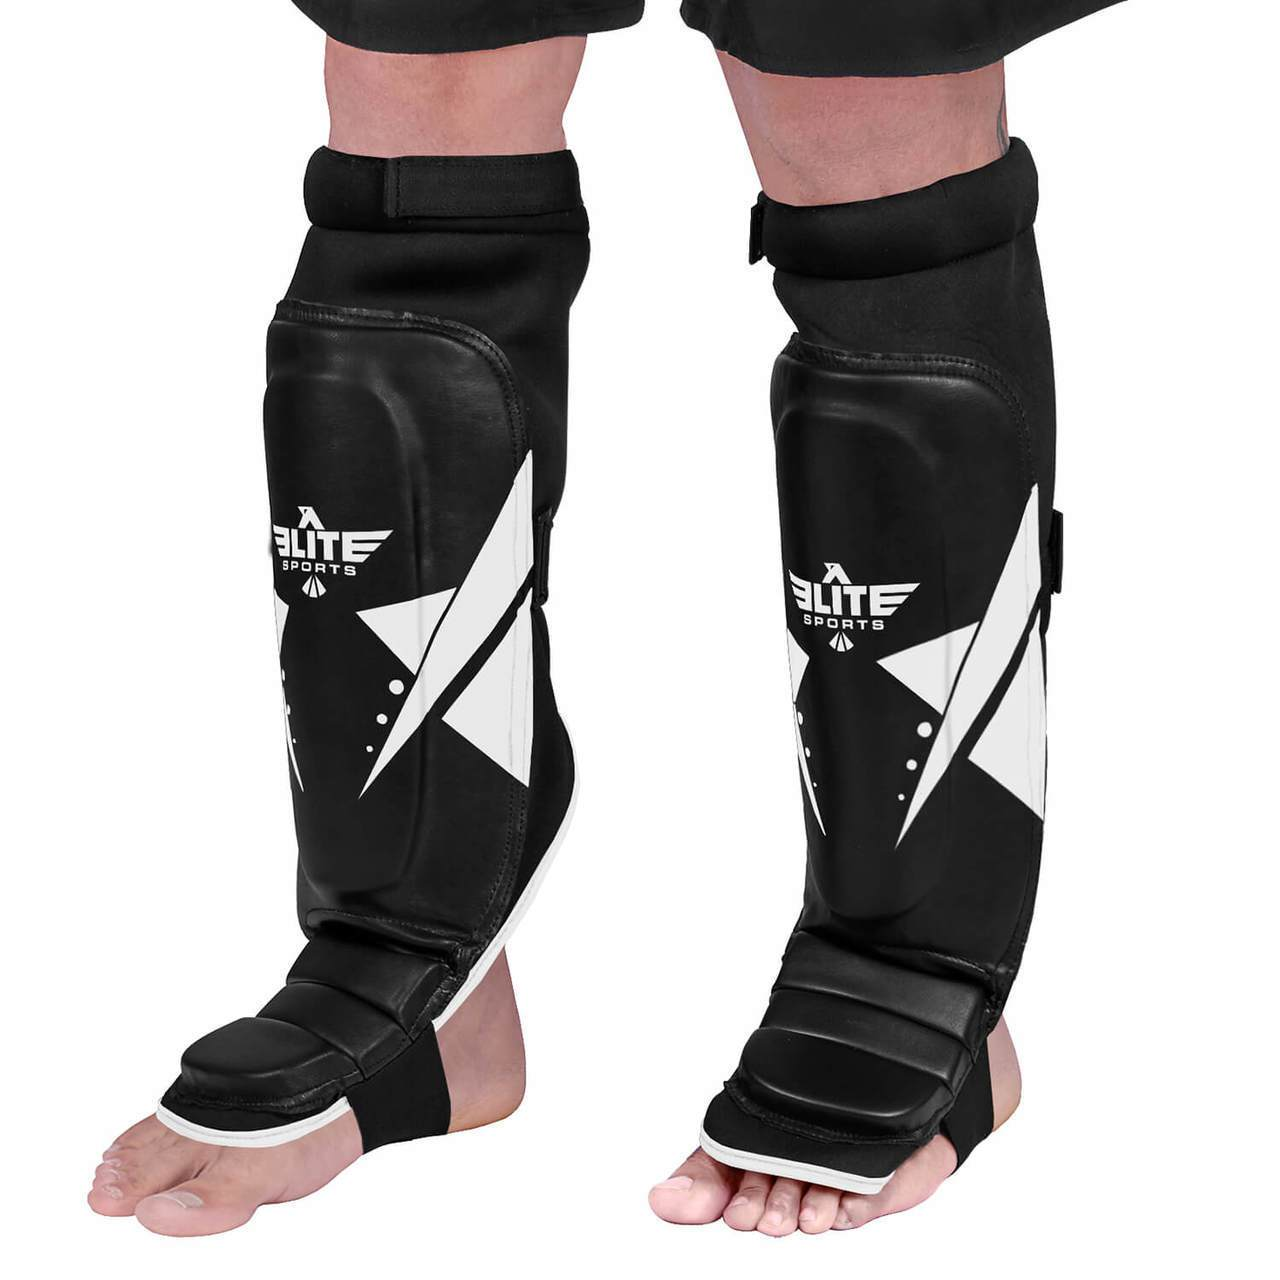 Elite Sports Star Series Black/White Karate Shin Guards